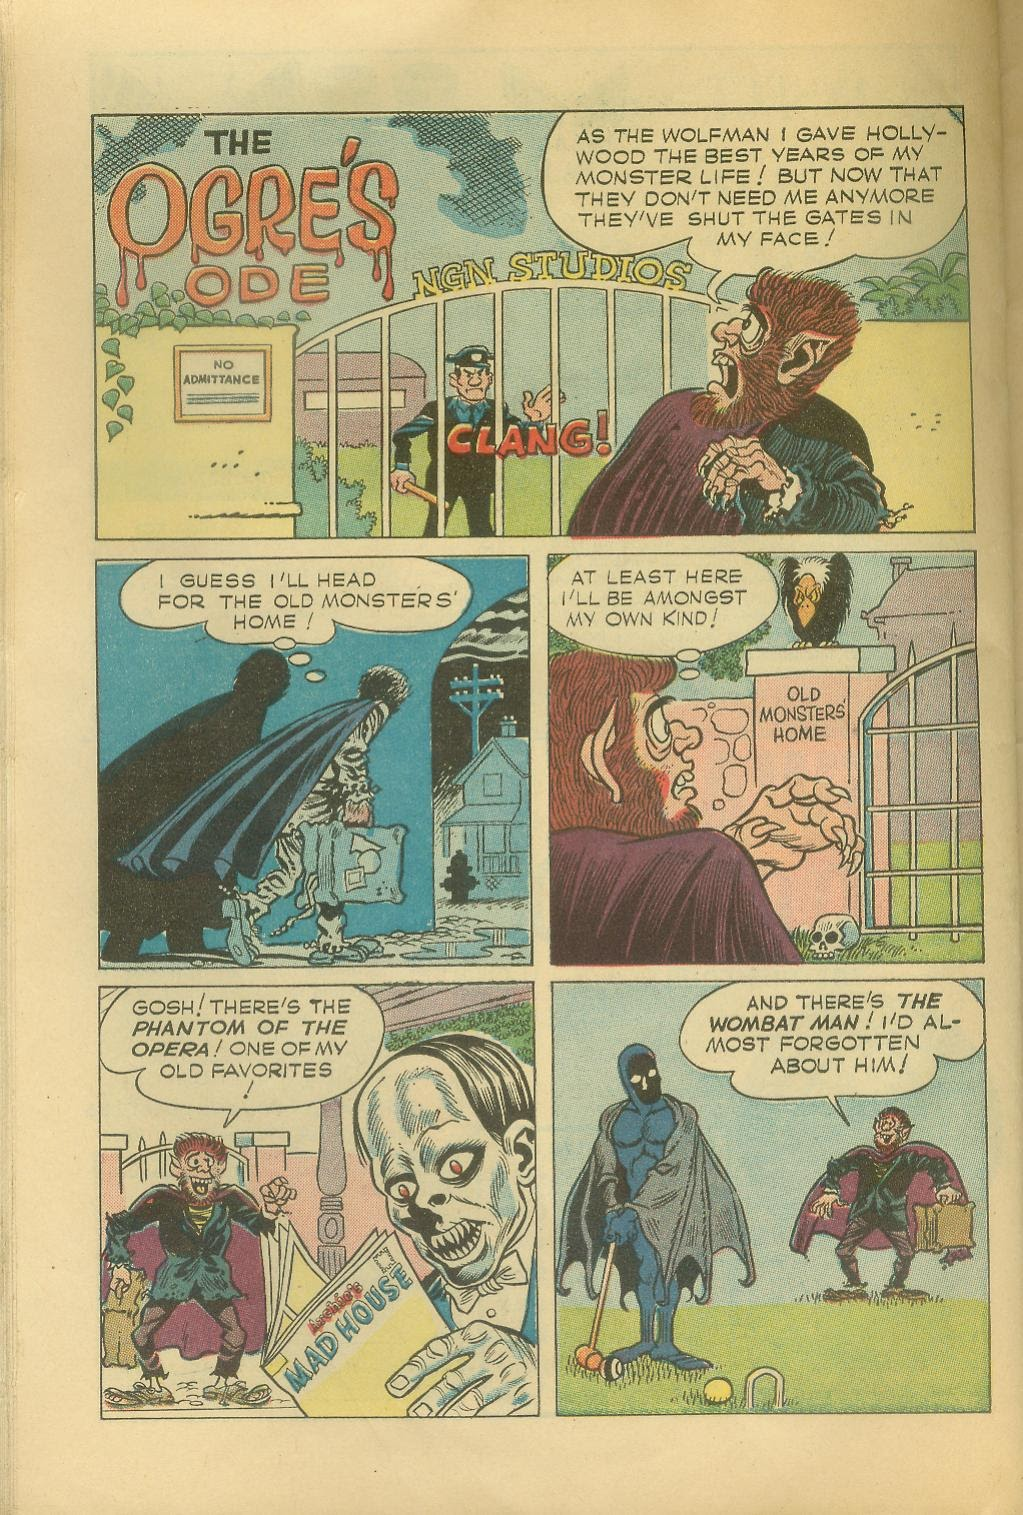 Read online Tales Calculated to Drive You Bats comic -  Issue #1 - 27